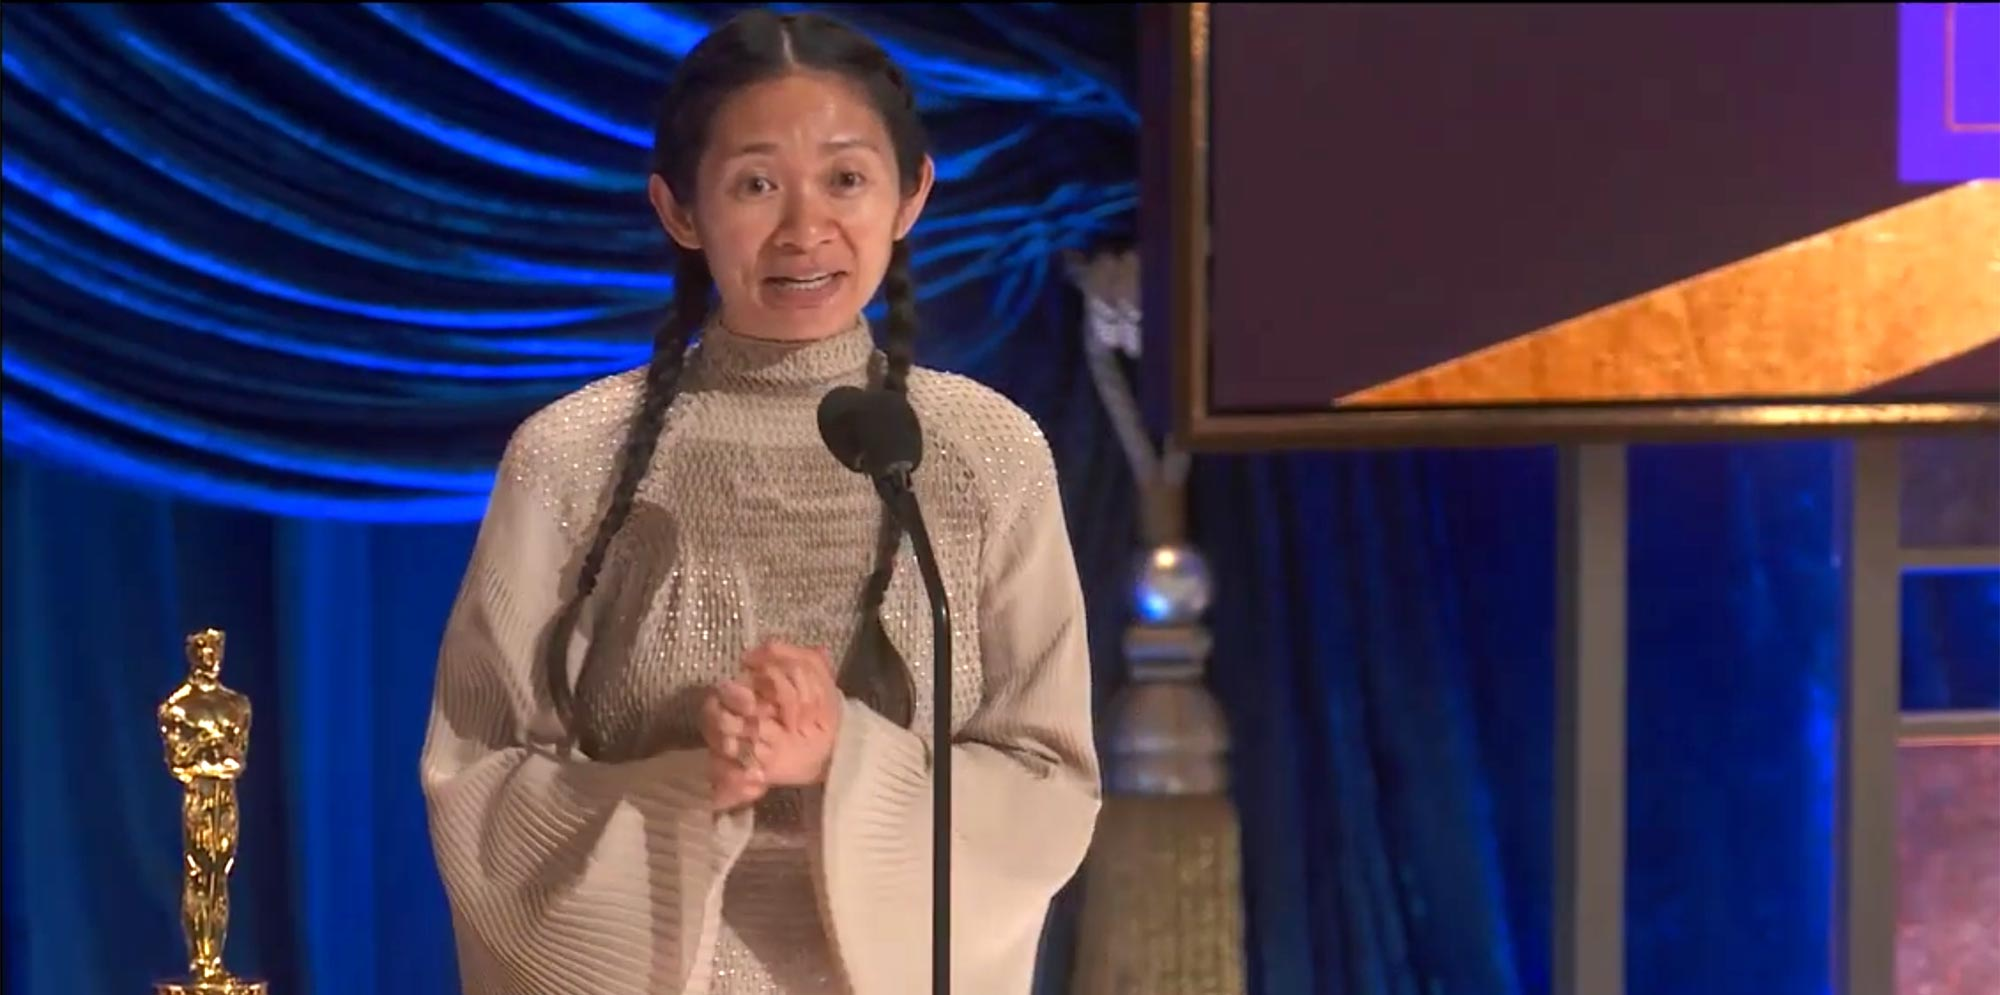 Chloe Zhao wins Best Director at the 2021 Oscars.